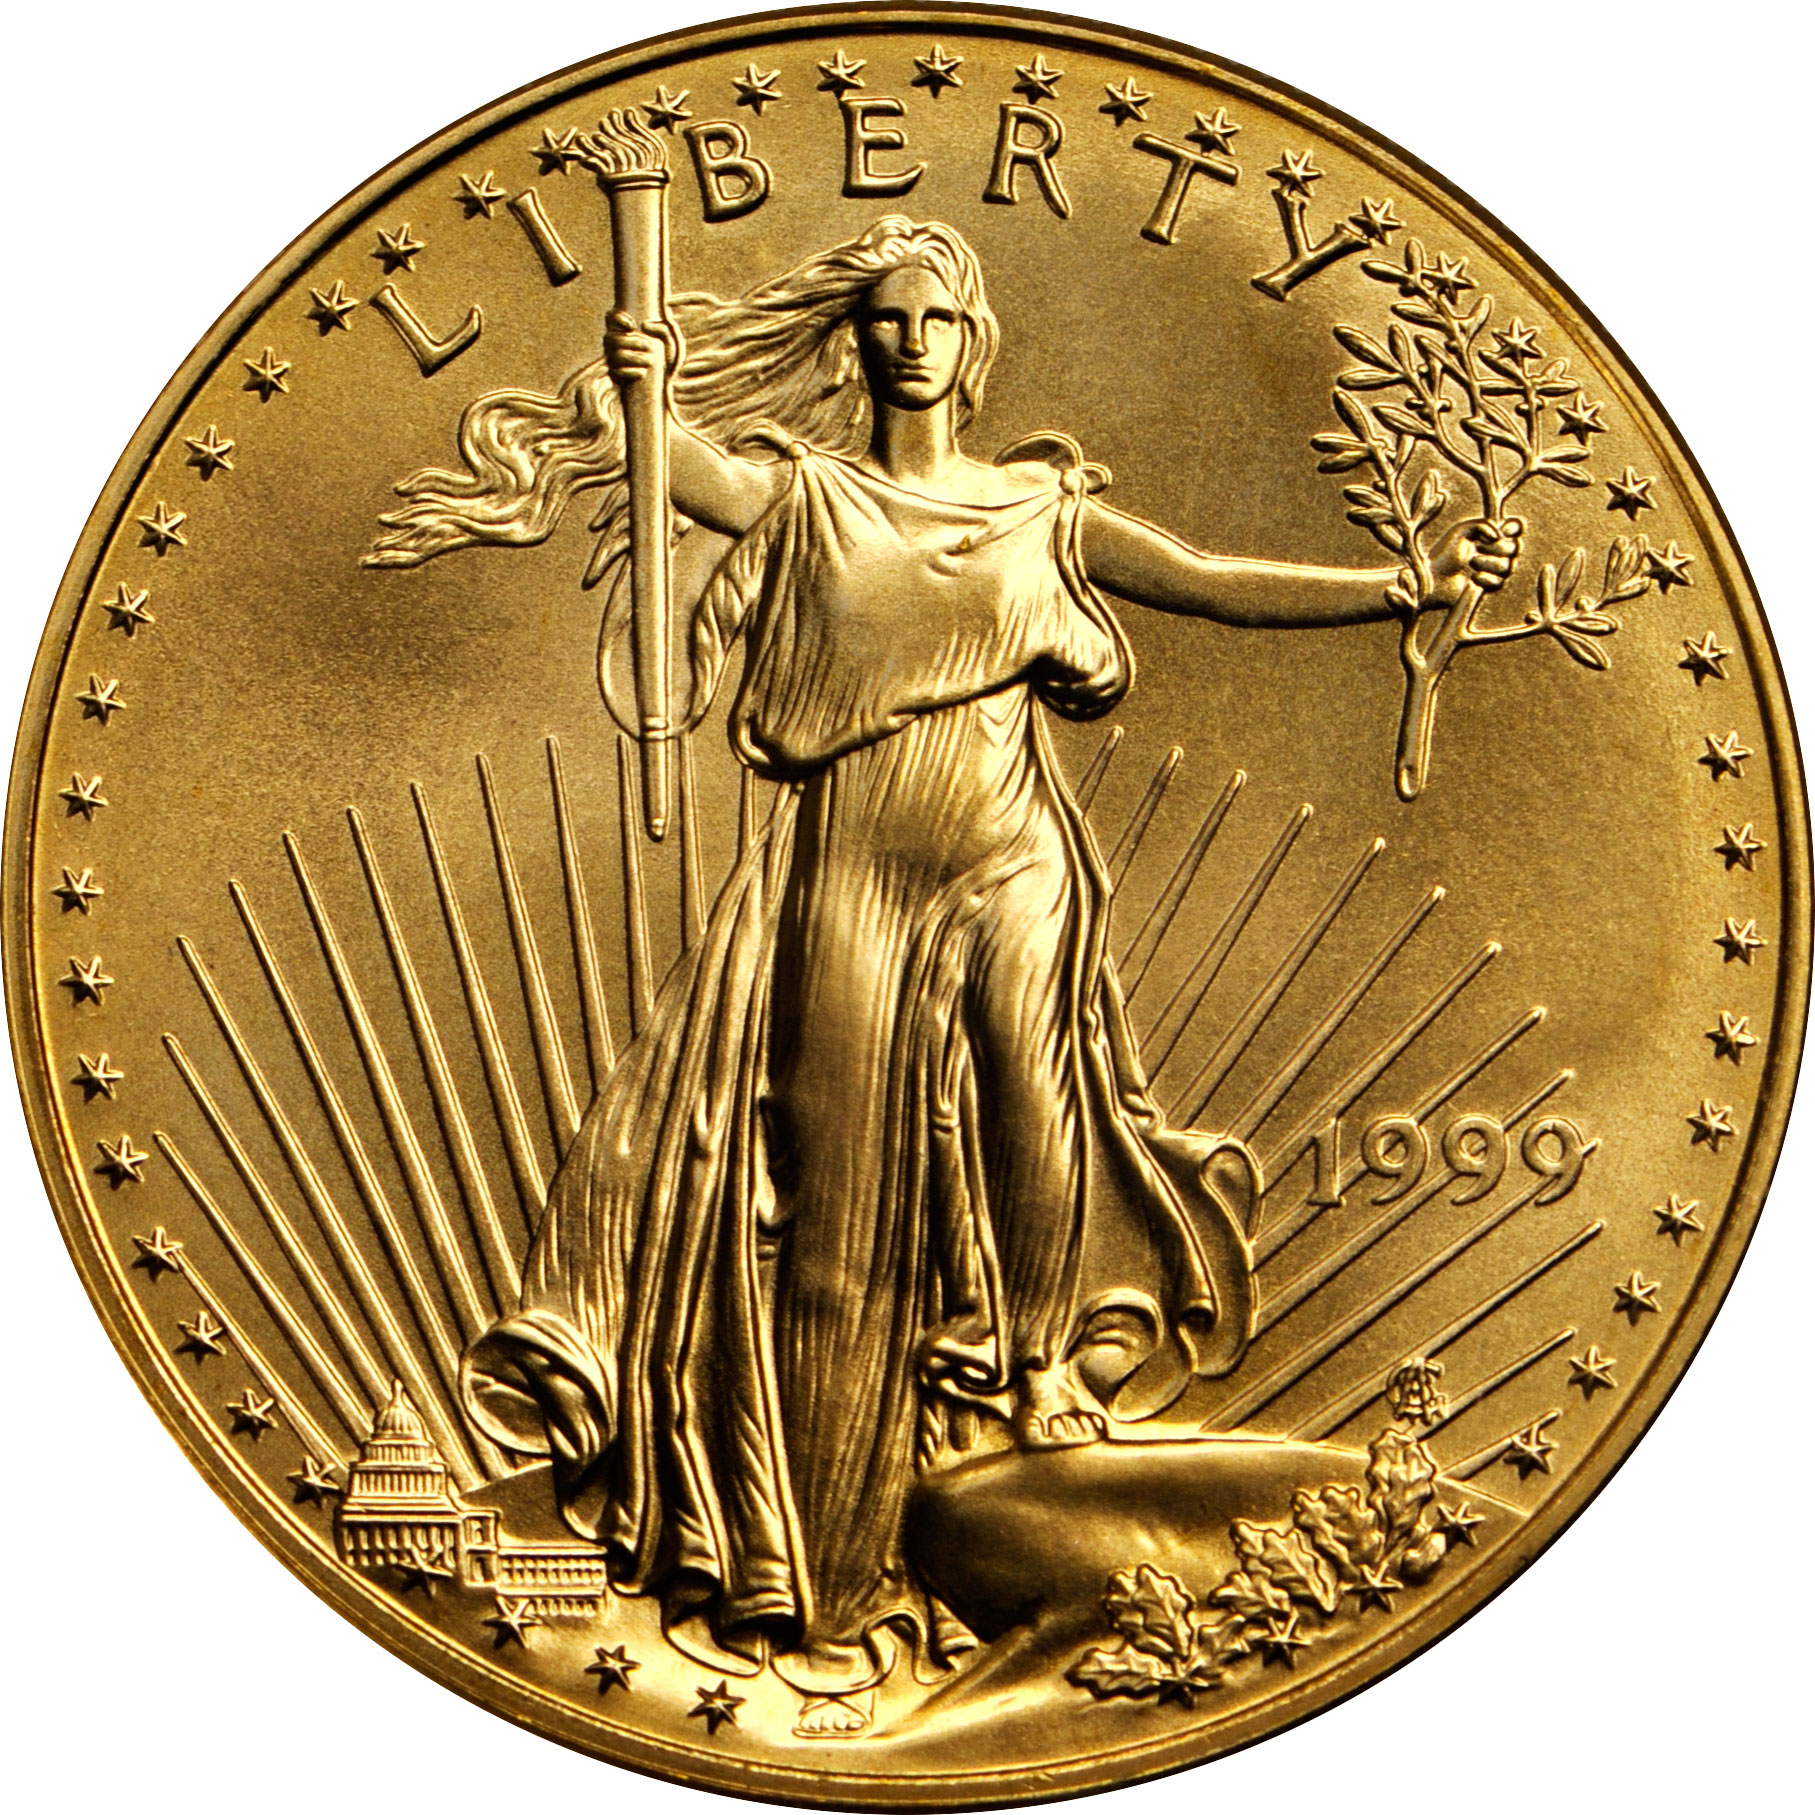 Value Of 1999 5 American Gold Eagle Coin